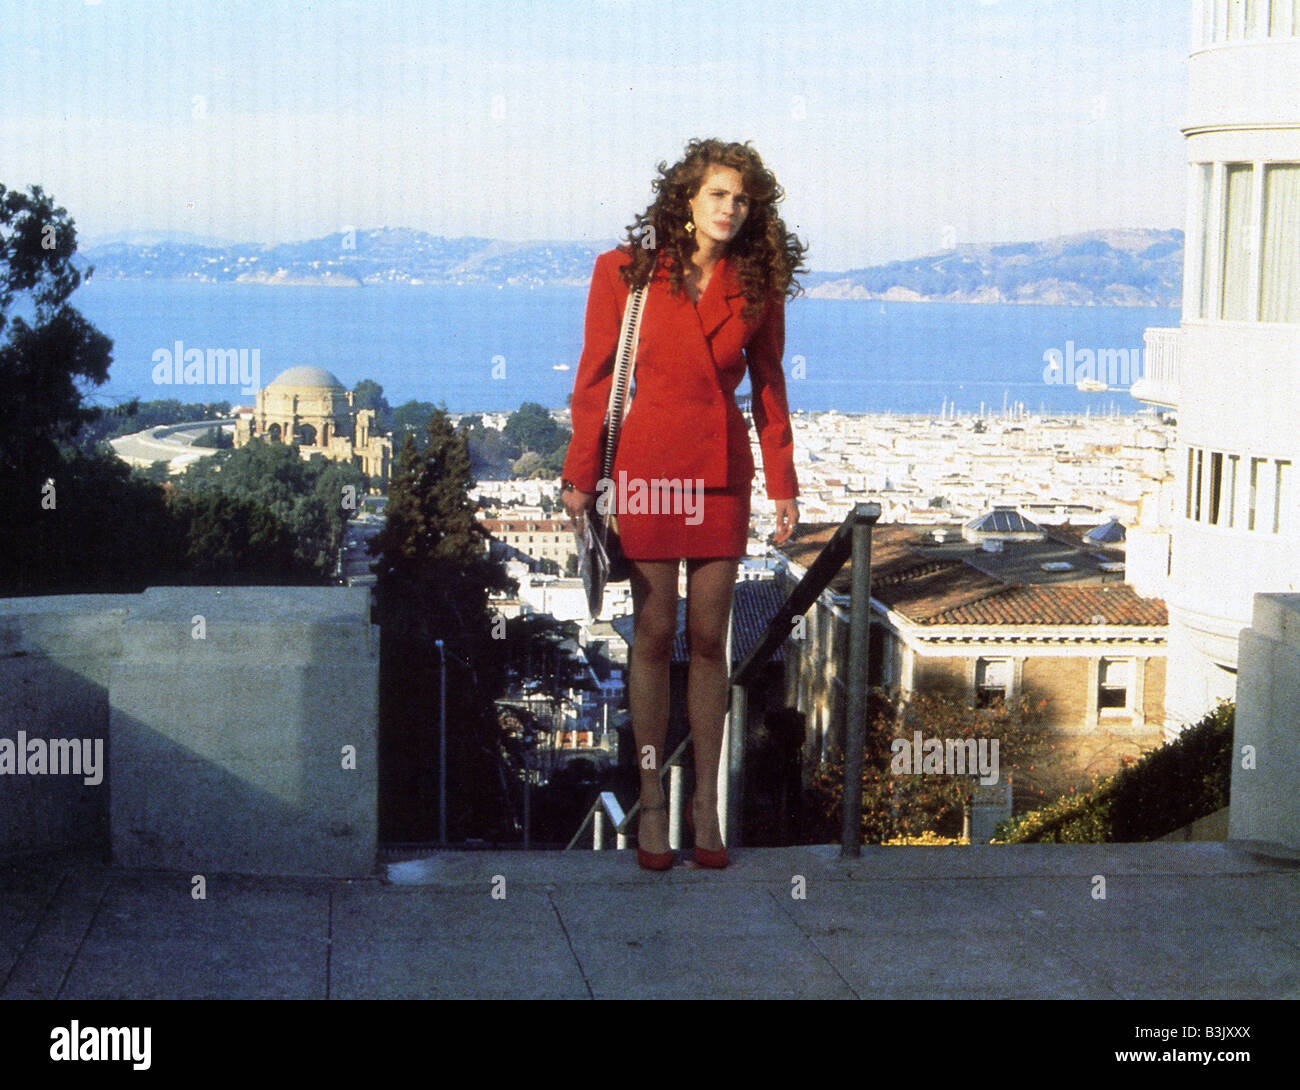 Dying Young 1991 Tcf Film With Julia Roberts Stock Photo